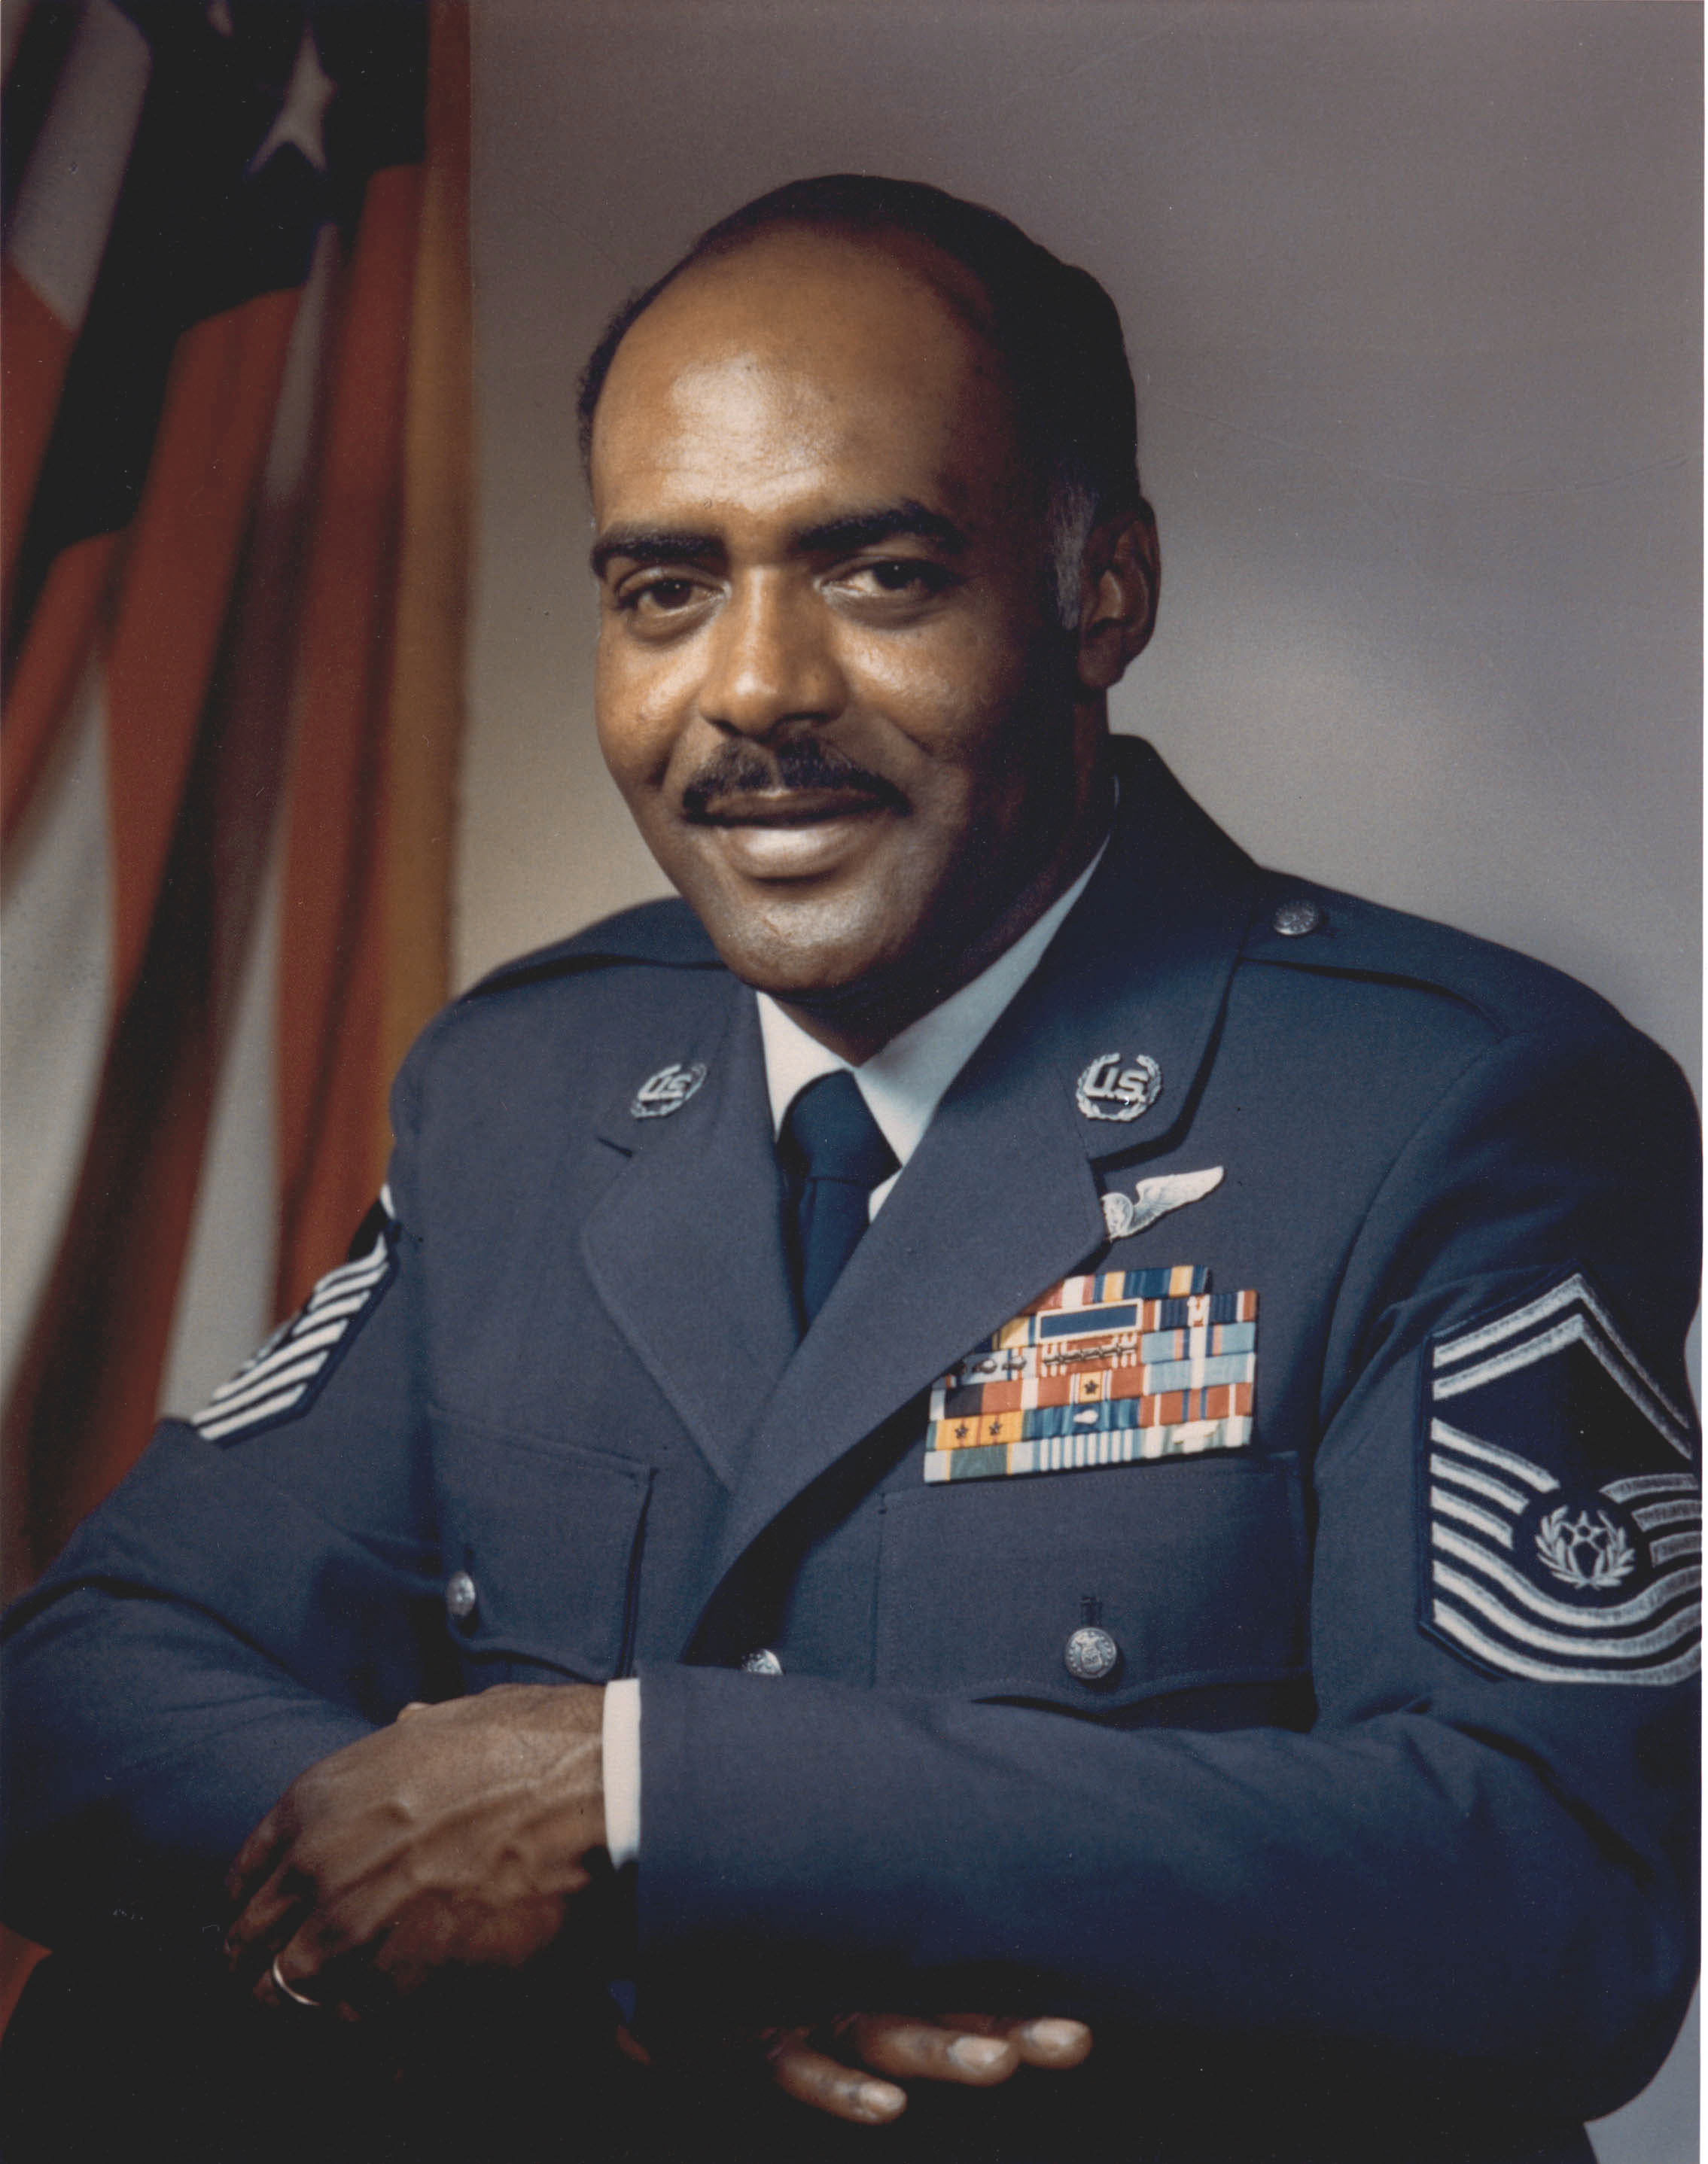 a biography of thomas n barnes a chief master sergeant of the us air force He died from cancer in sherman, texas where he had been undergoing treatment effective dates of promotion chief master sergeant of the air force october 1, 1973.